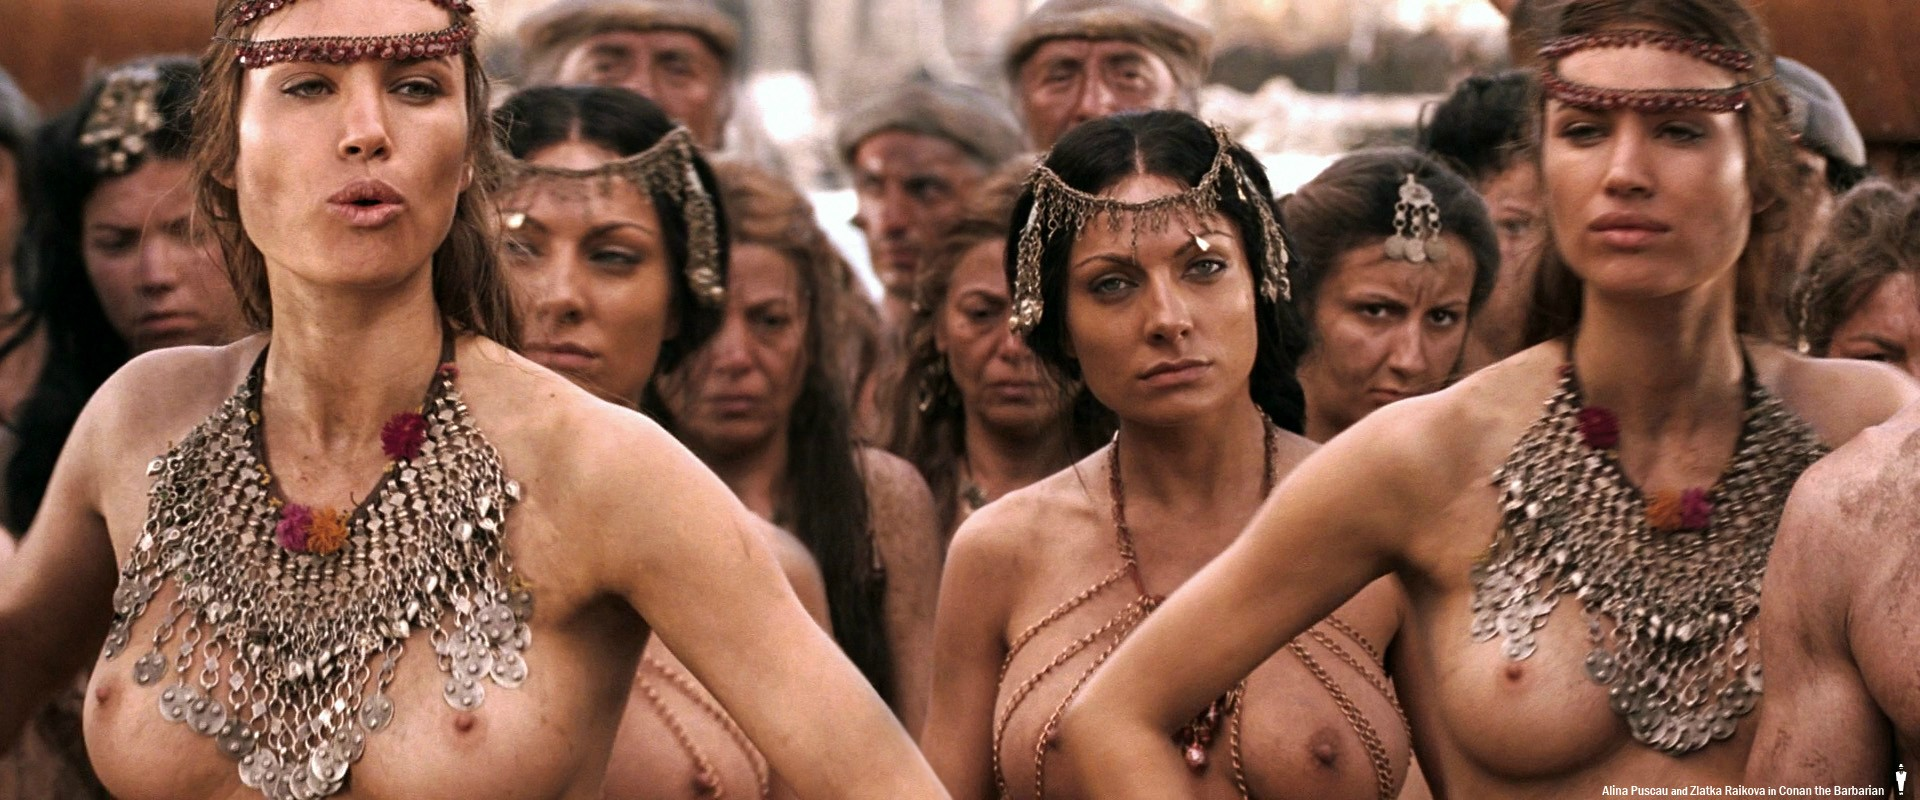 Nude picture from conan the barbarian 3d erotic movie